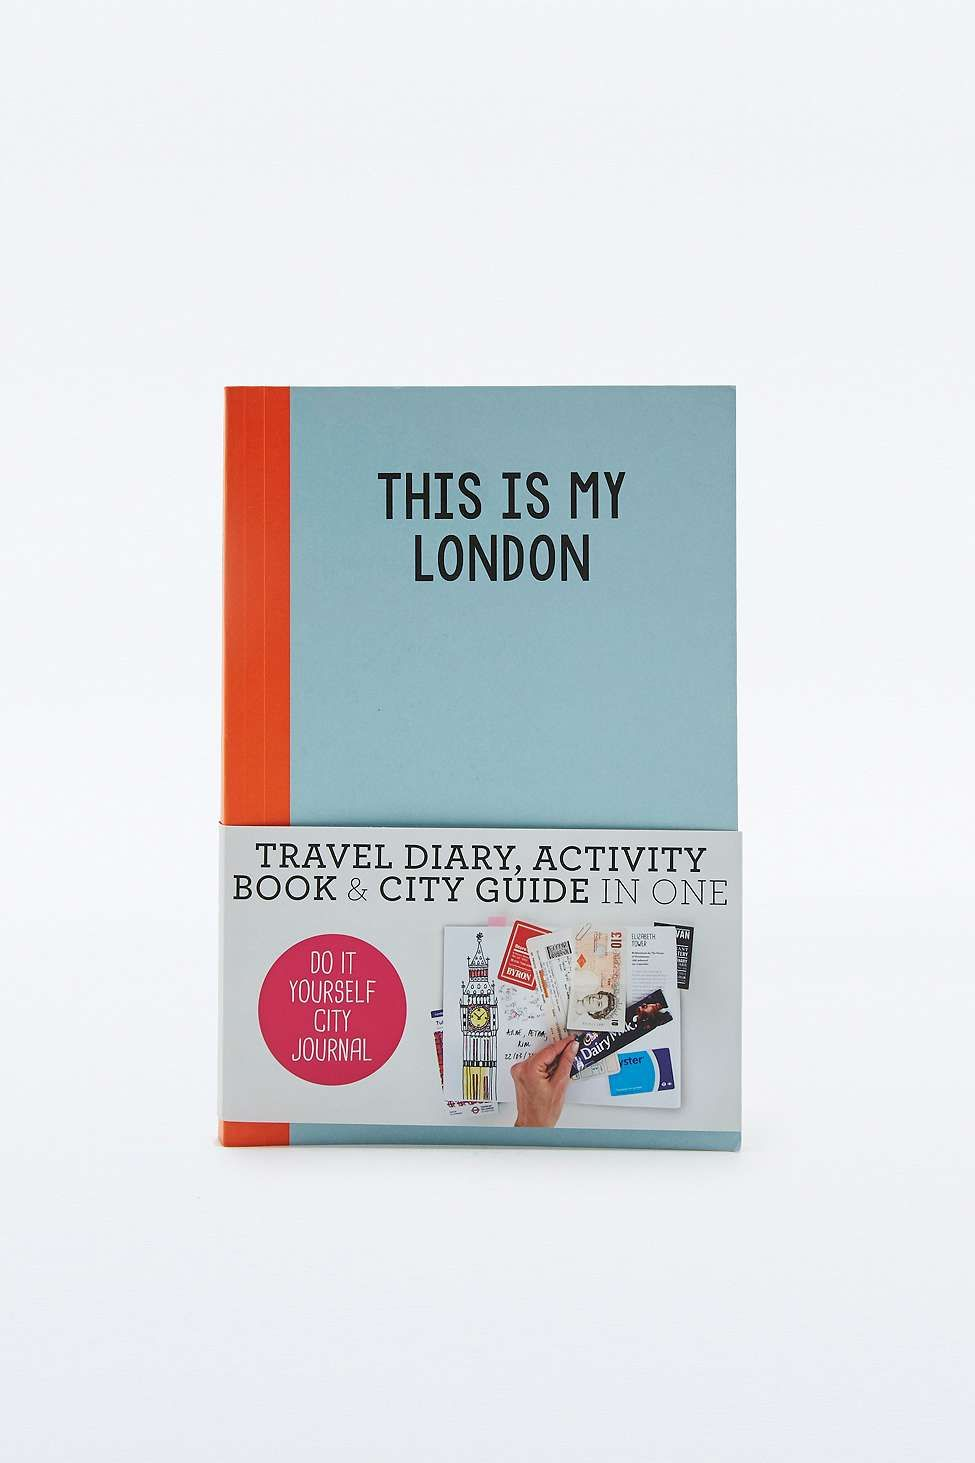 This is my london do it yourself city journal city journal for me this is my london do it yourself city journalurban outfitters solutioingenieria Images